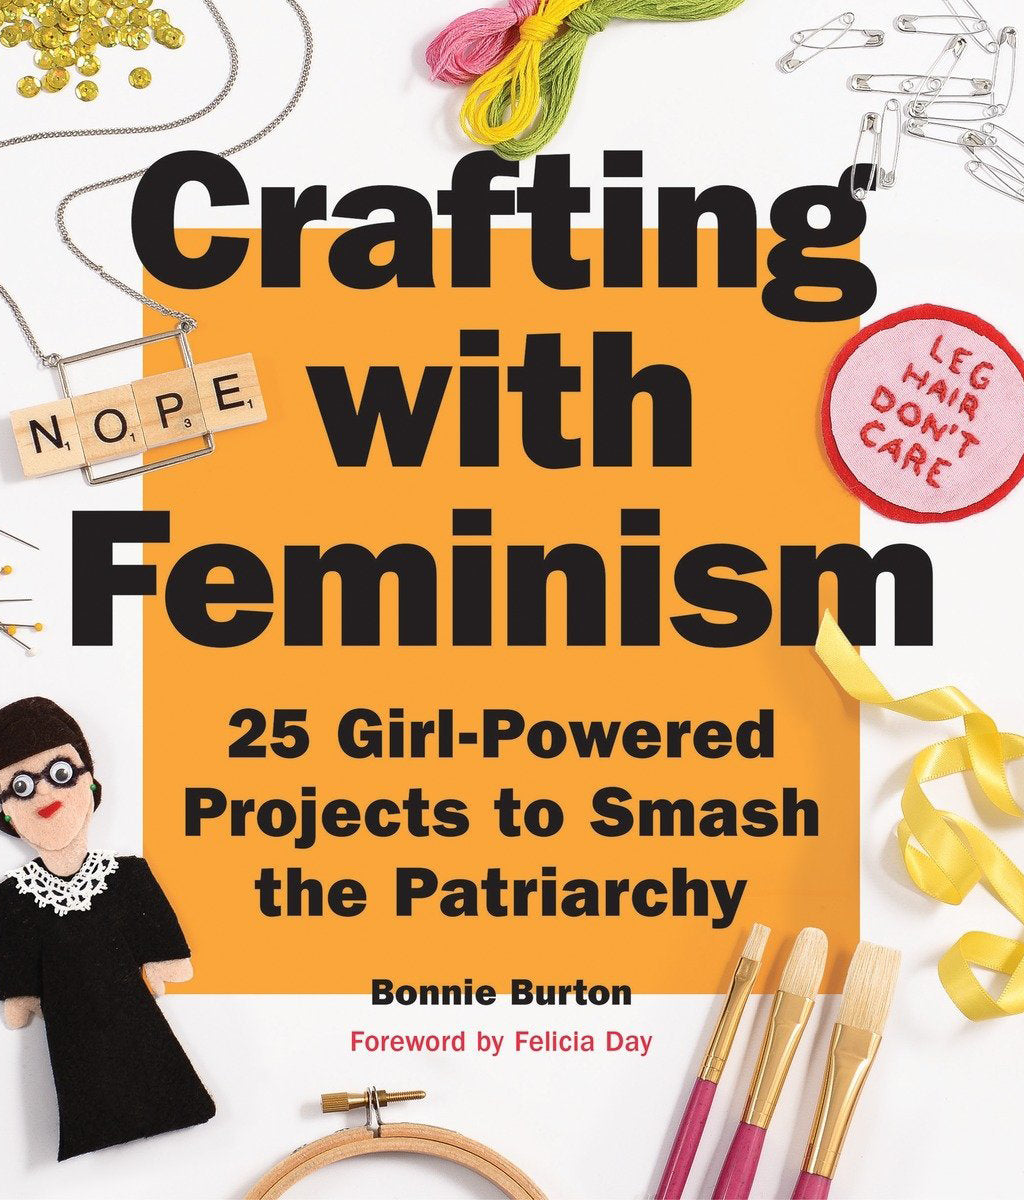 Crafting with Feminism: 25 Girl-Powered Projects to Smash the Patriarchy Bonnie Burton